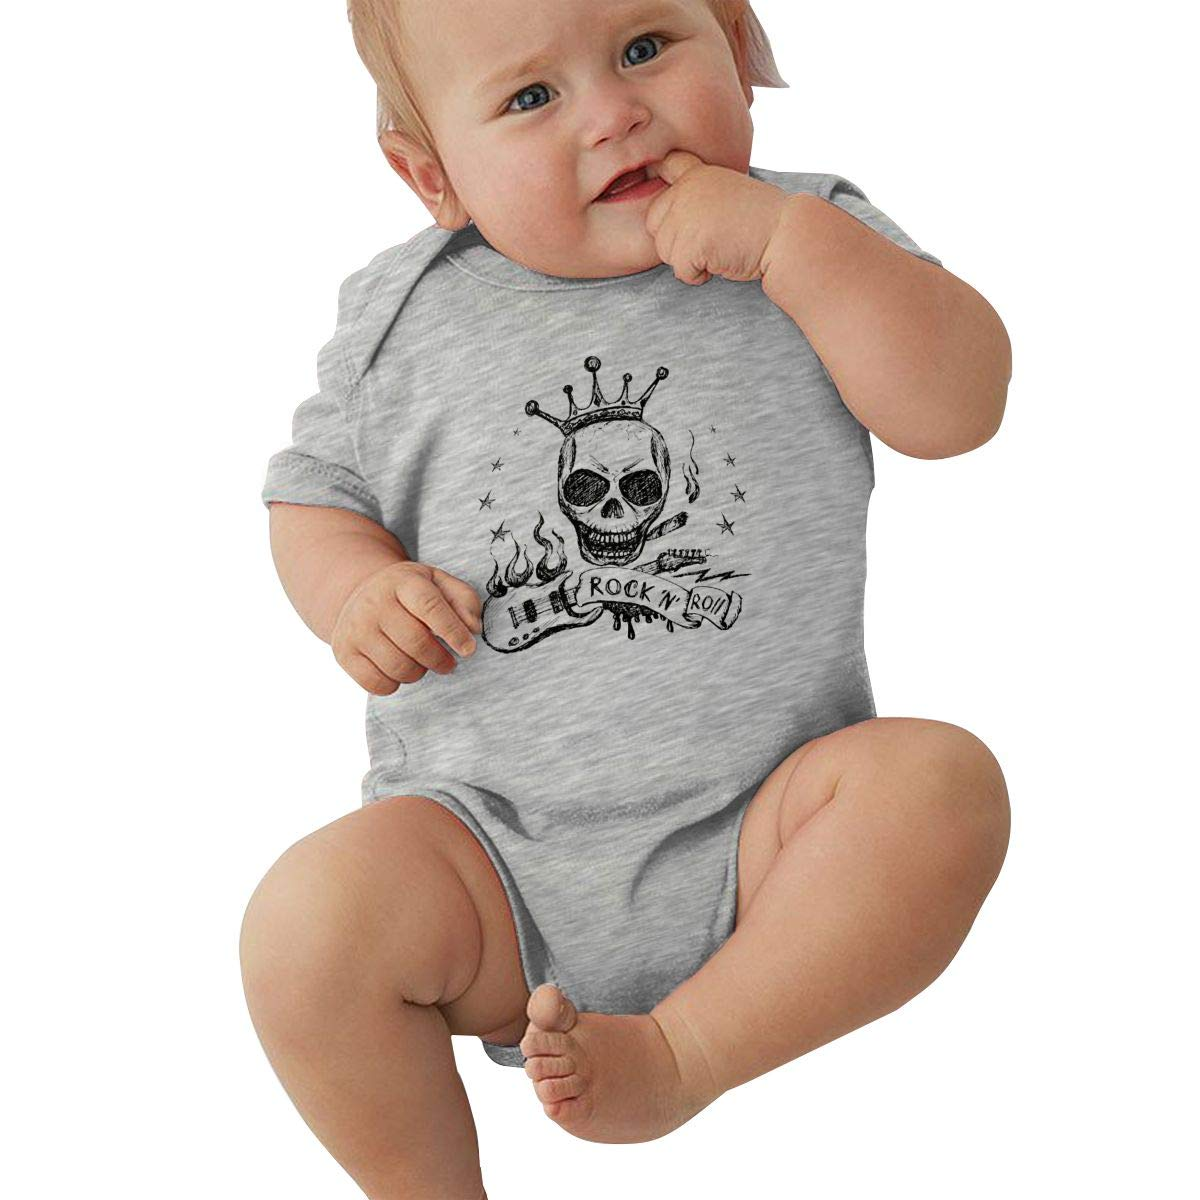 Rock and Roll Skull Guitar Infant Baby Jersey Bodysuit Short Sleeve Bodysuit Romper Cotton Outfits for 0-24 Months Baby